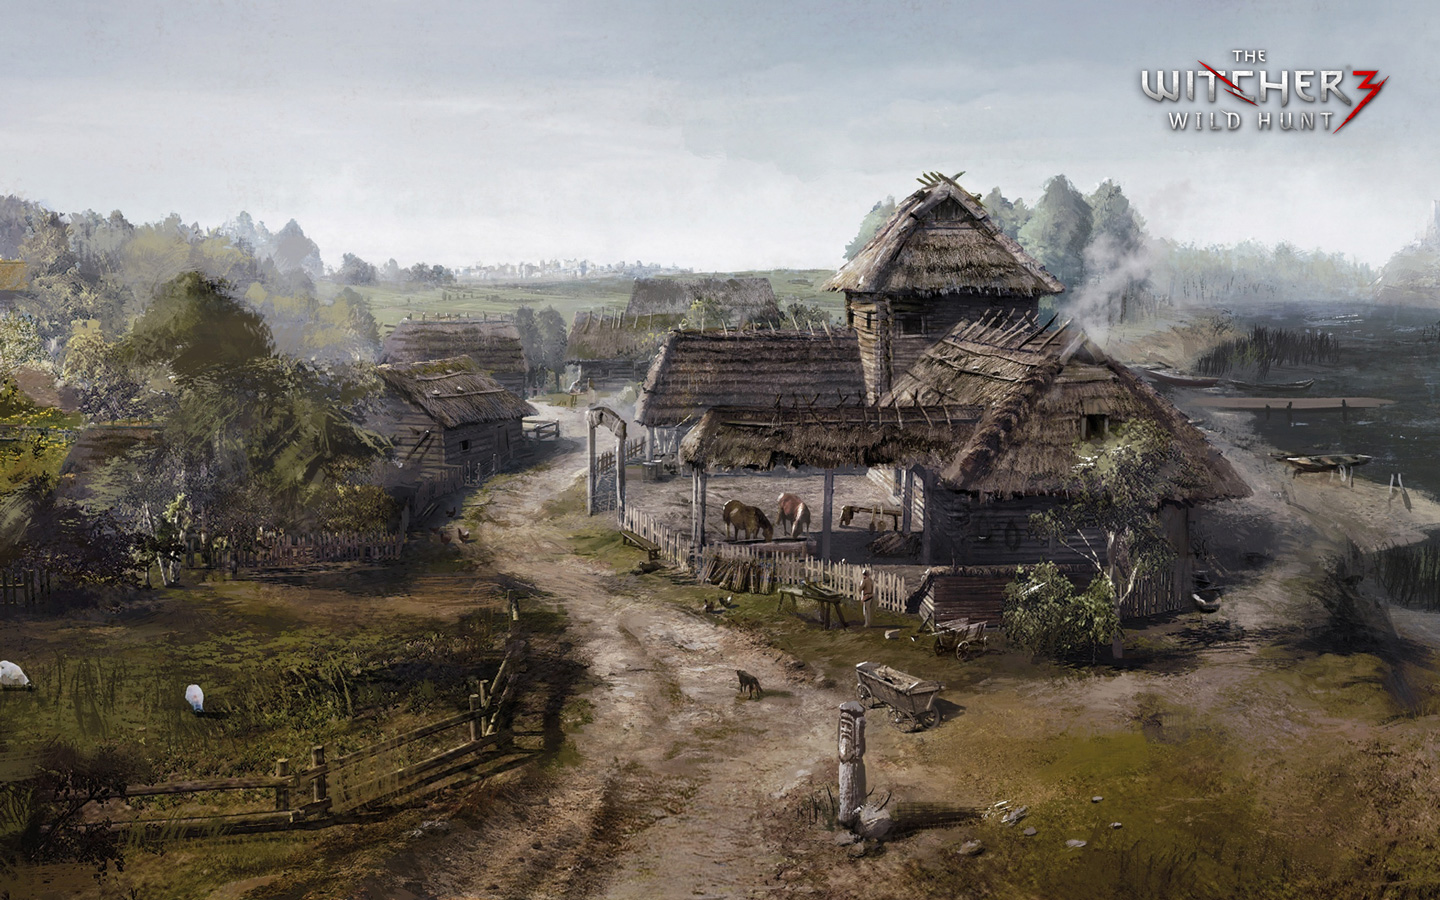 The Witcher 3 Wallpaper in 1440x900